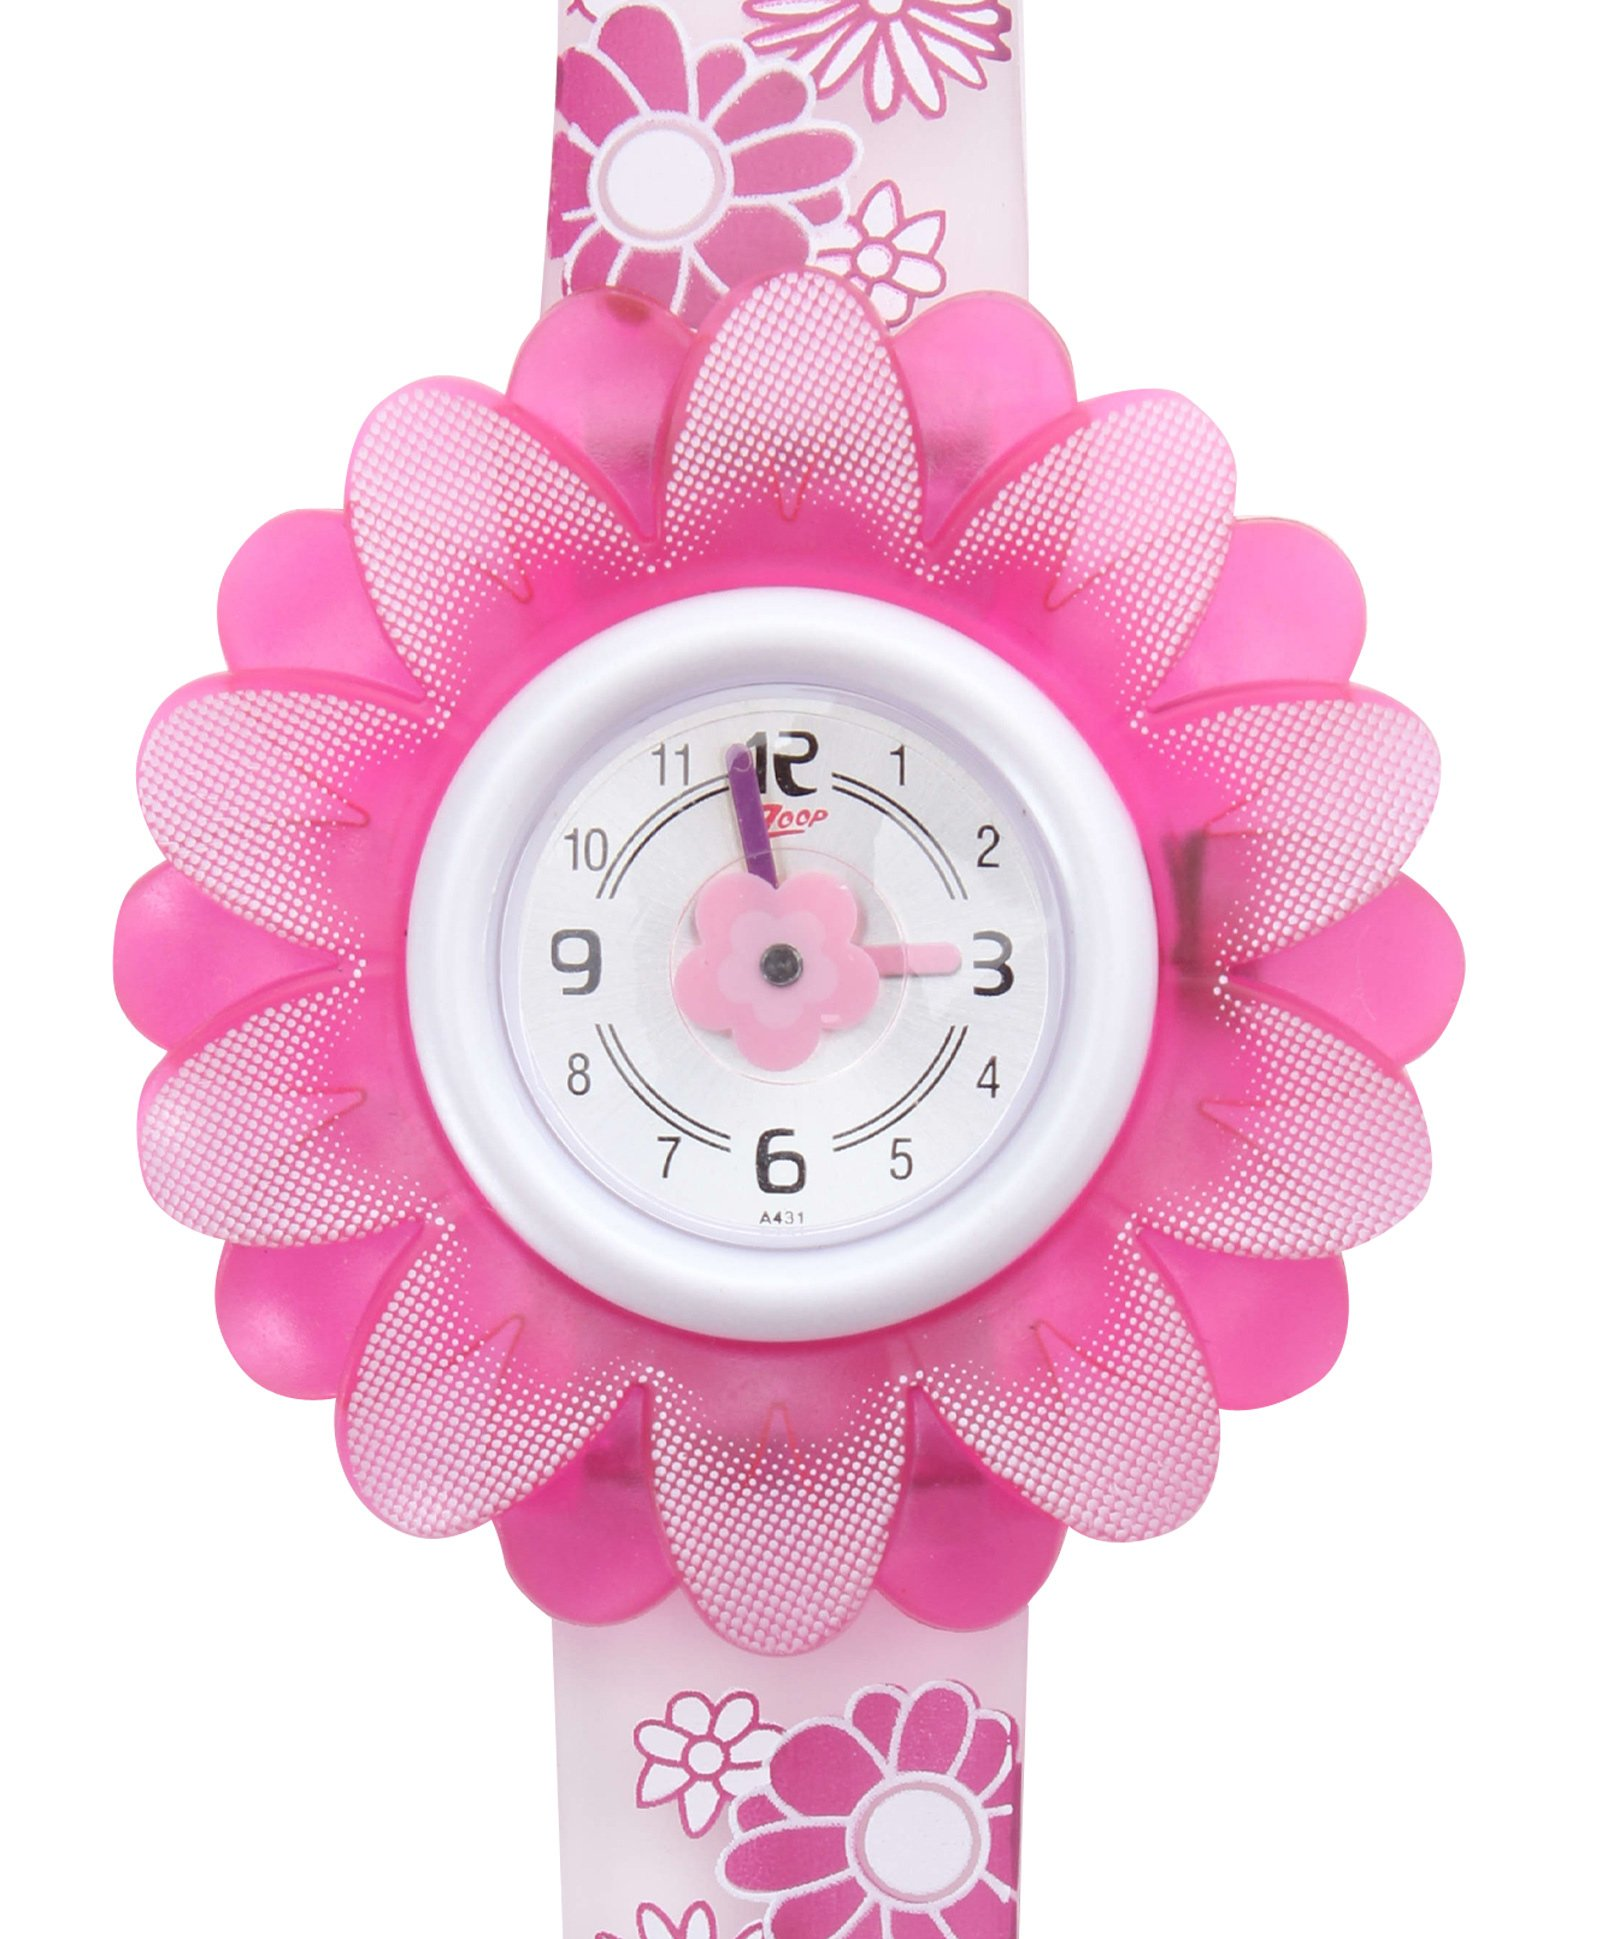 Titan Watch With Price For Girls